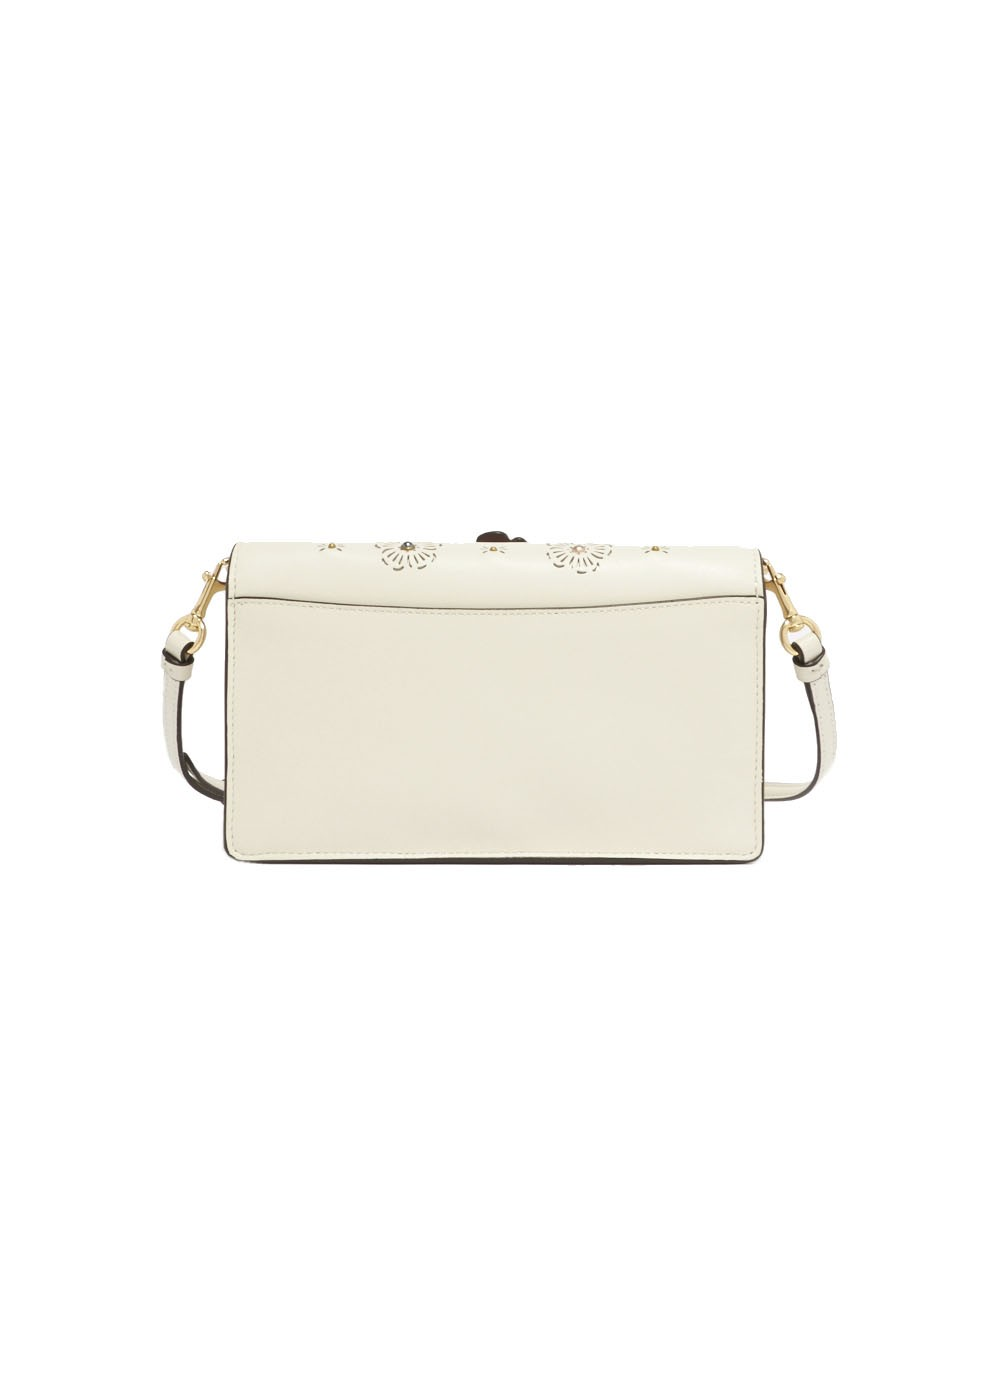 【最大53%OFF】FOLDOVER CROSSBODY|LI/CHALK|ショルダーバッグ|COACH